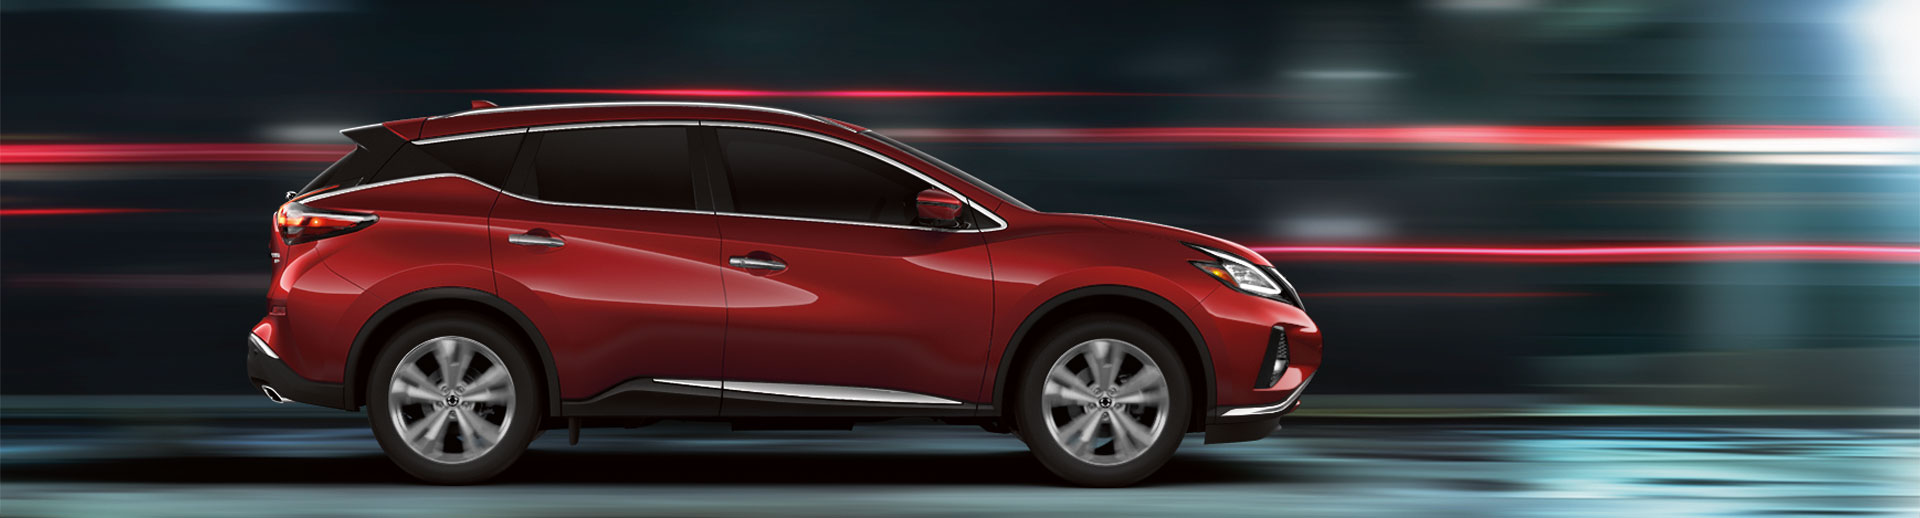 2020 Nissan Murano Lifestyle Photo